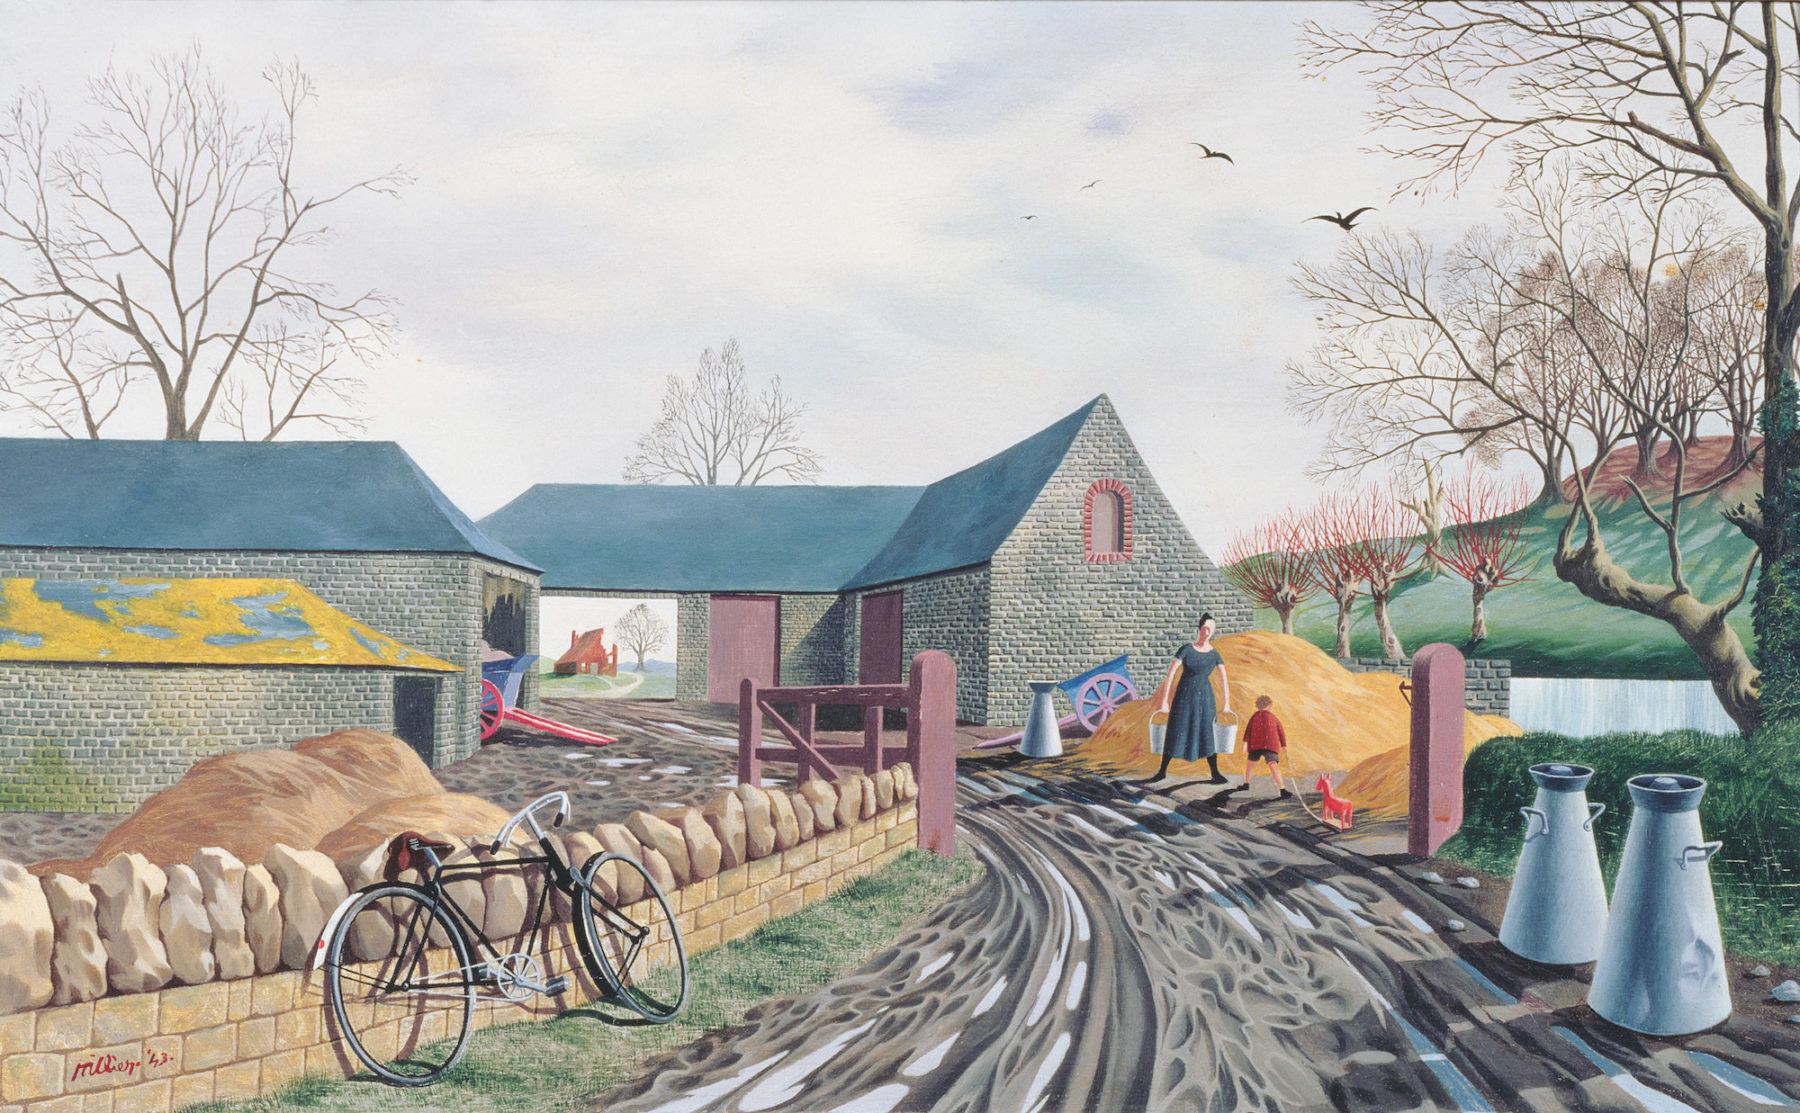 A muddy track lined with a stone wall and abandoned bike on one side, and traditional milk churns on the other, leads through an open gate to a series of farm buildings. A blue cart with red wheels leans out of one of the barn doors. On the right a female figure carrying two milk pails stands with a child in front of the pile of hay that sits in front of the barn.